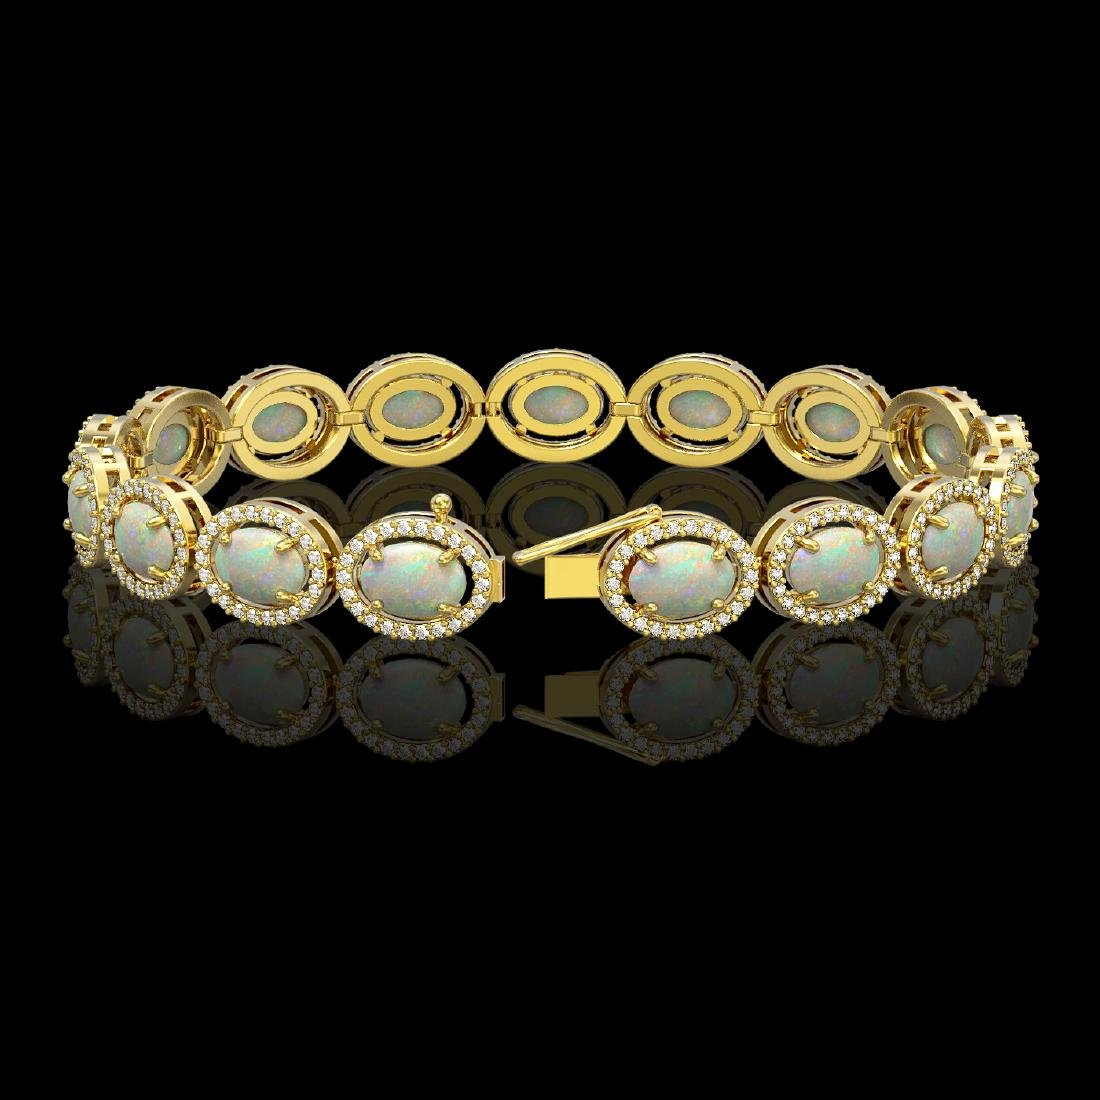 14.24 CTW Opal & Diamond Halo Bracelet 10K Yellow Gold - 2